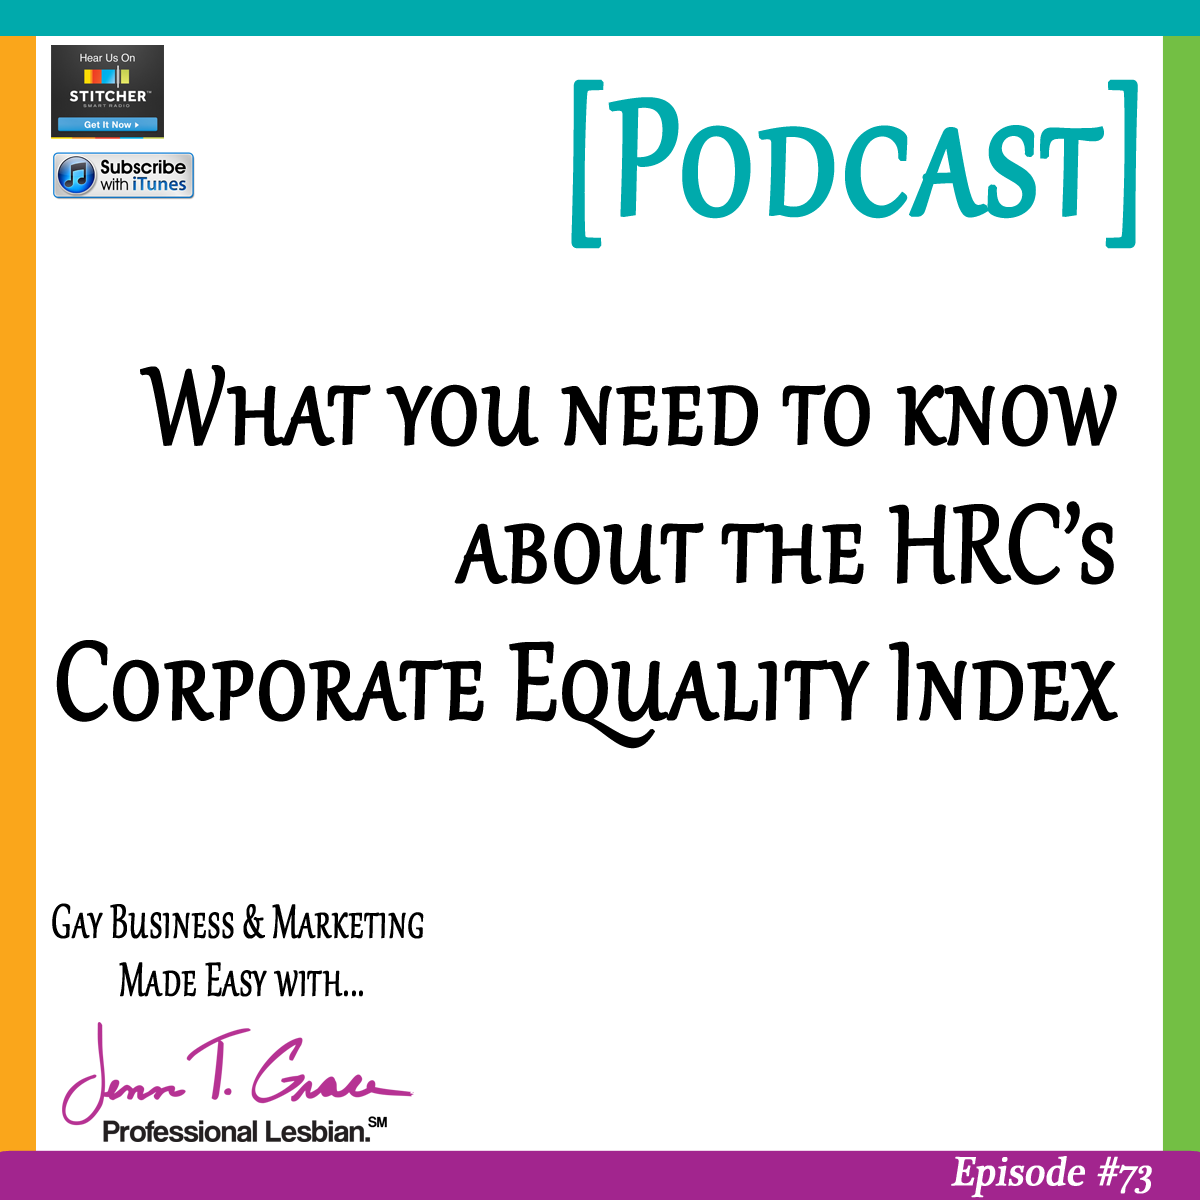 Personal Branding for the LGBTQ Professional - #73: What you need to know about the Human Rights Campaign, Corporate Equality Index